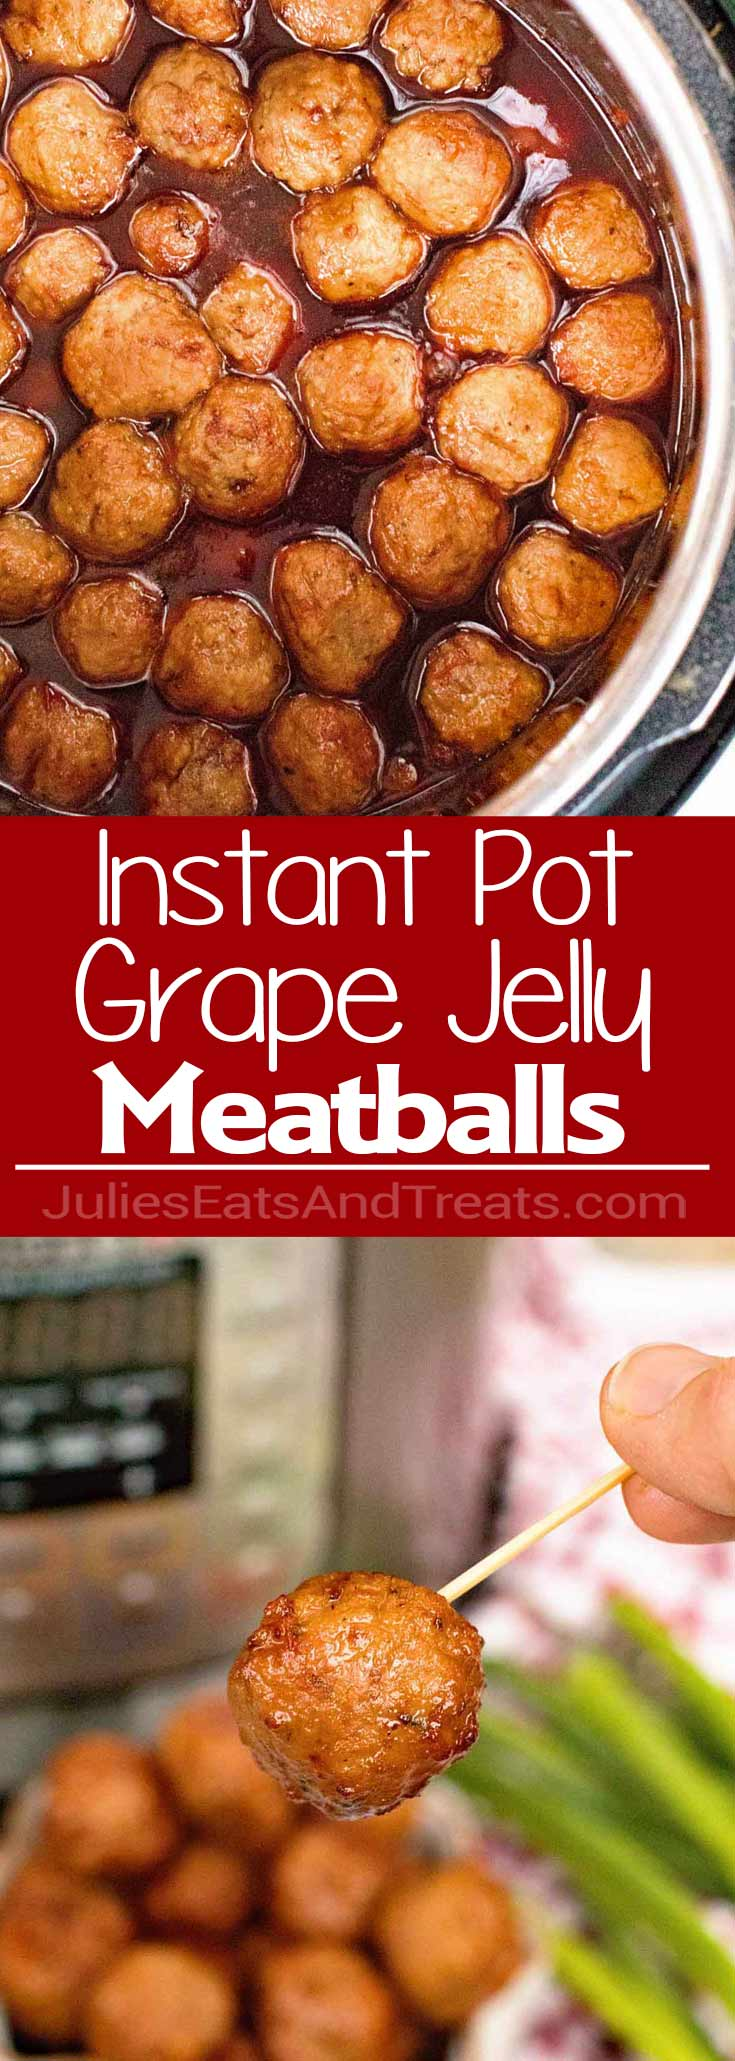 Pressure Cooker {Instant Pot} Grape Jelly Meatballs – These easy to make, traditional, meatballs with grape jelly and chili sauce are perfect for parties and game day gatherings! They make a great family friendly dinner served over rice too! Quick, Easy And Delicious Using Your Instant Pot or Pressure Cooker!